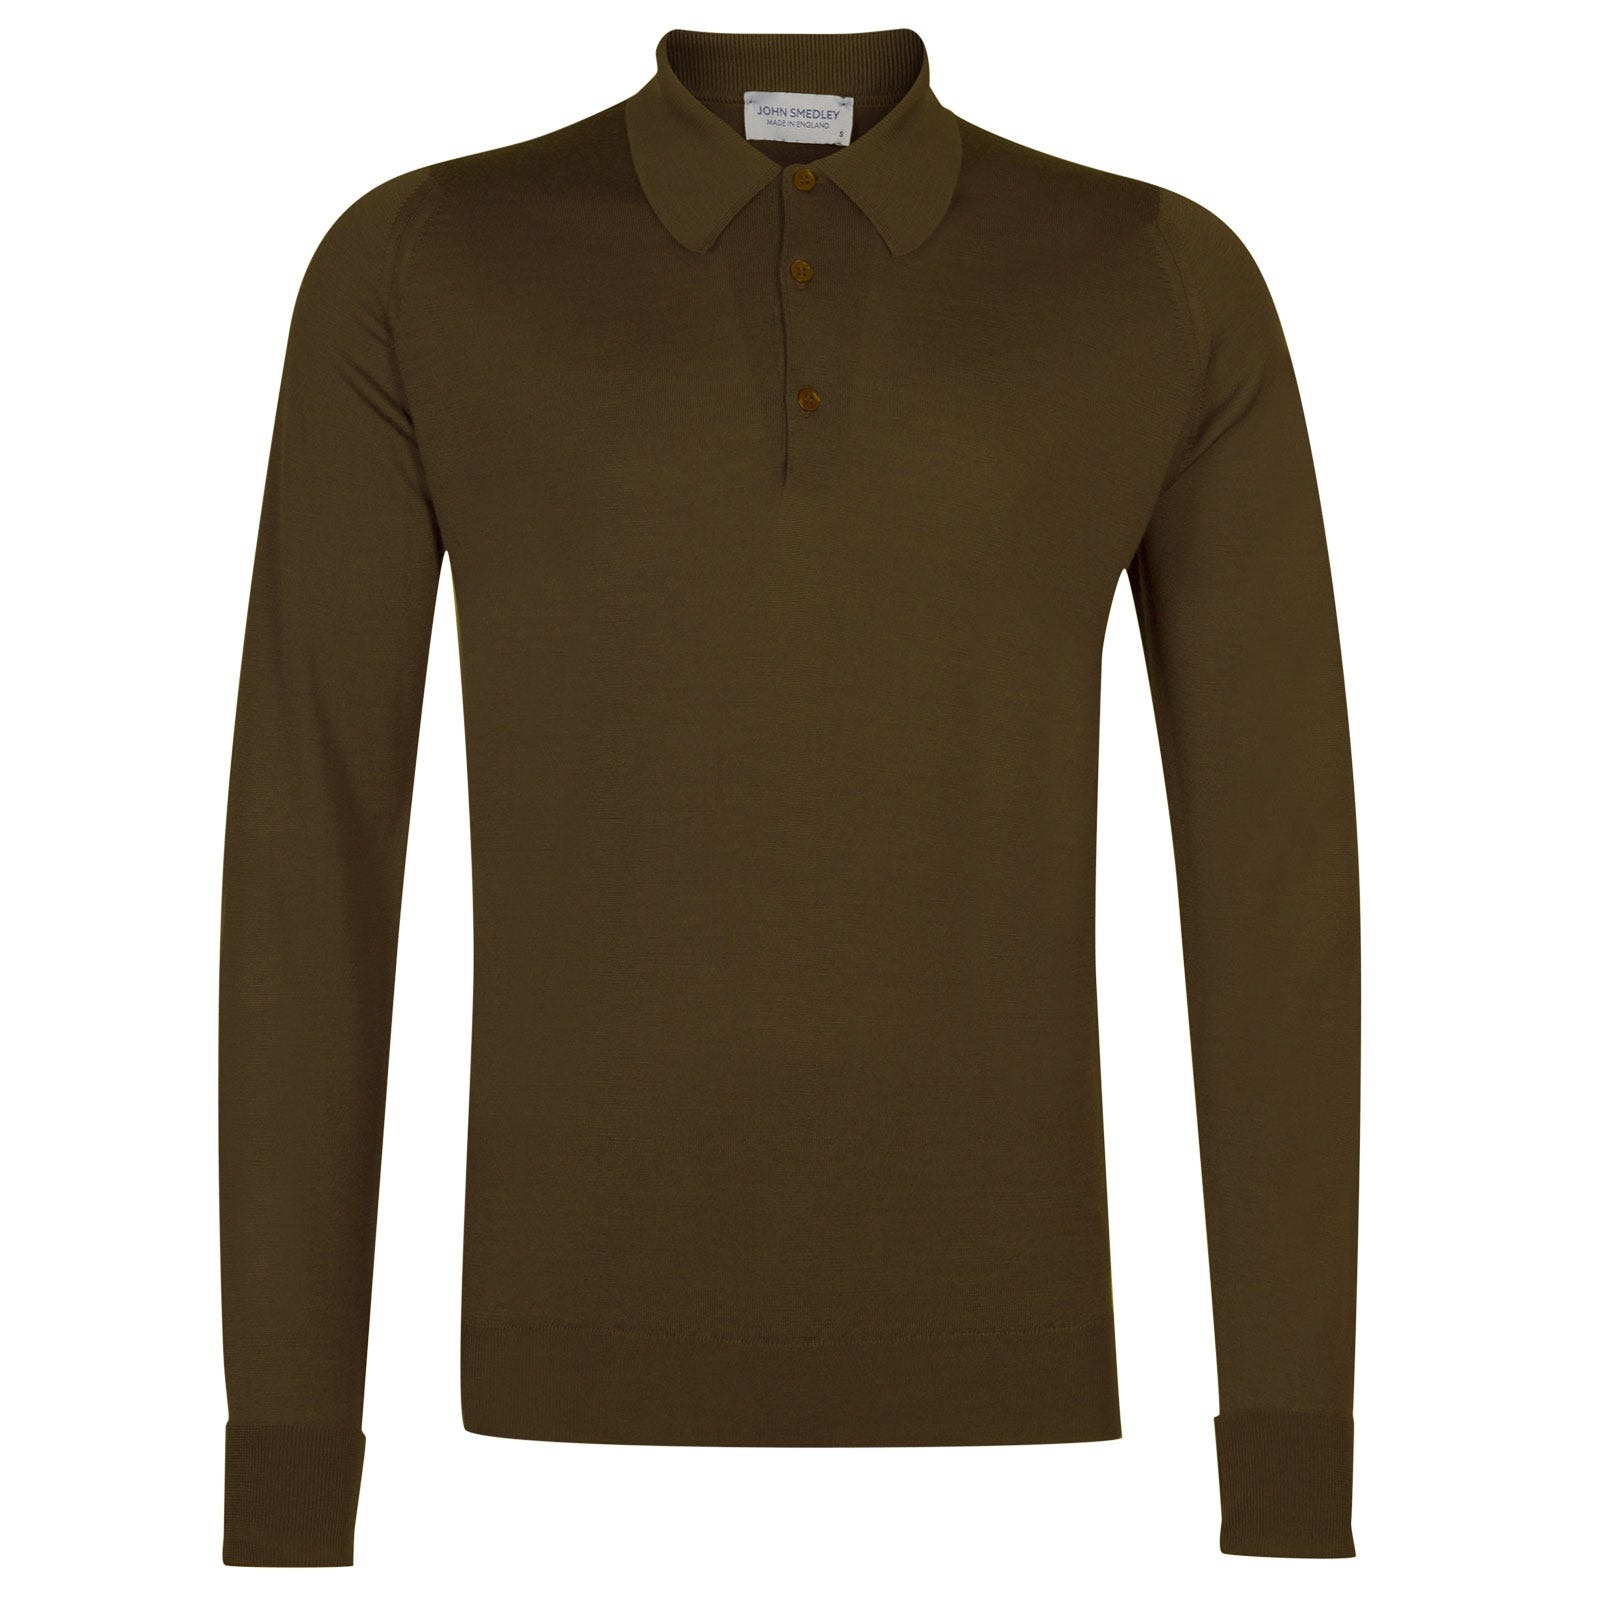 John Smedley dorset Merino Wool Shirt in Kielder Green-XL